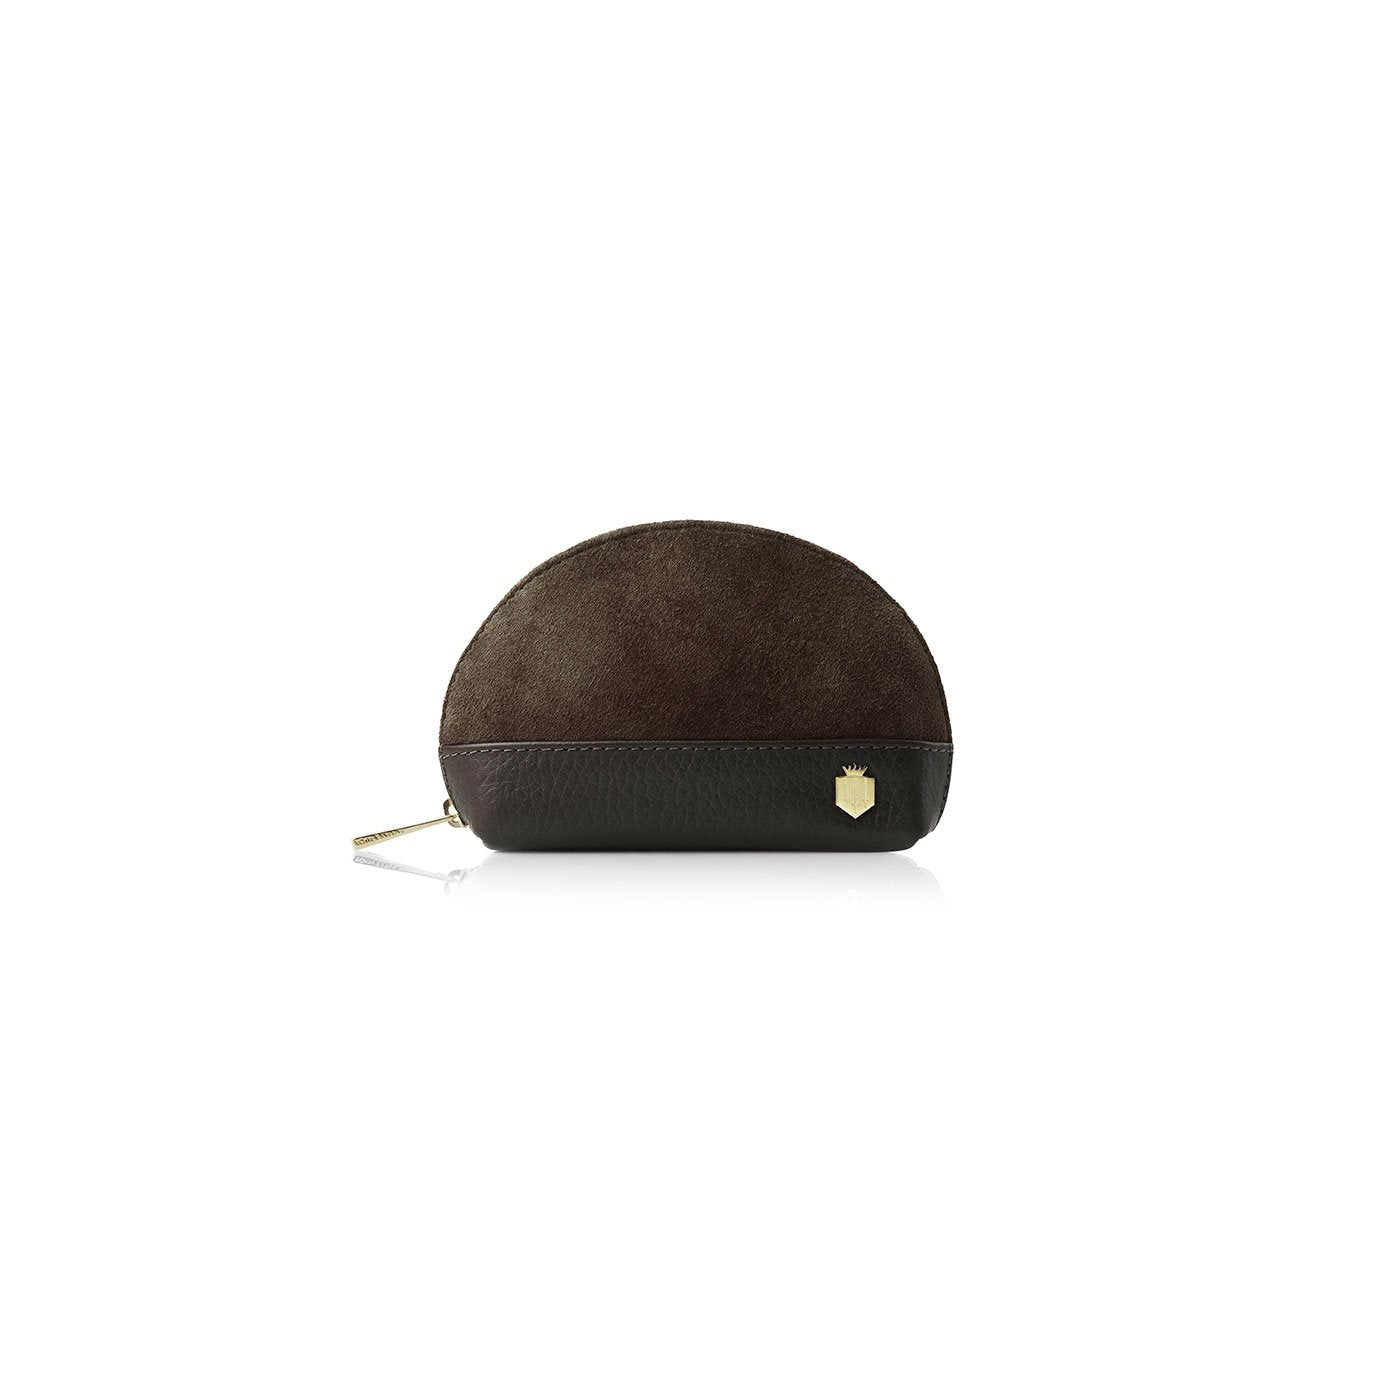 CHILTERN LEATHER & SUEDE COIN PURSE - Chocolate - Fairfax & Favor